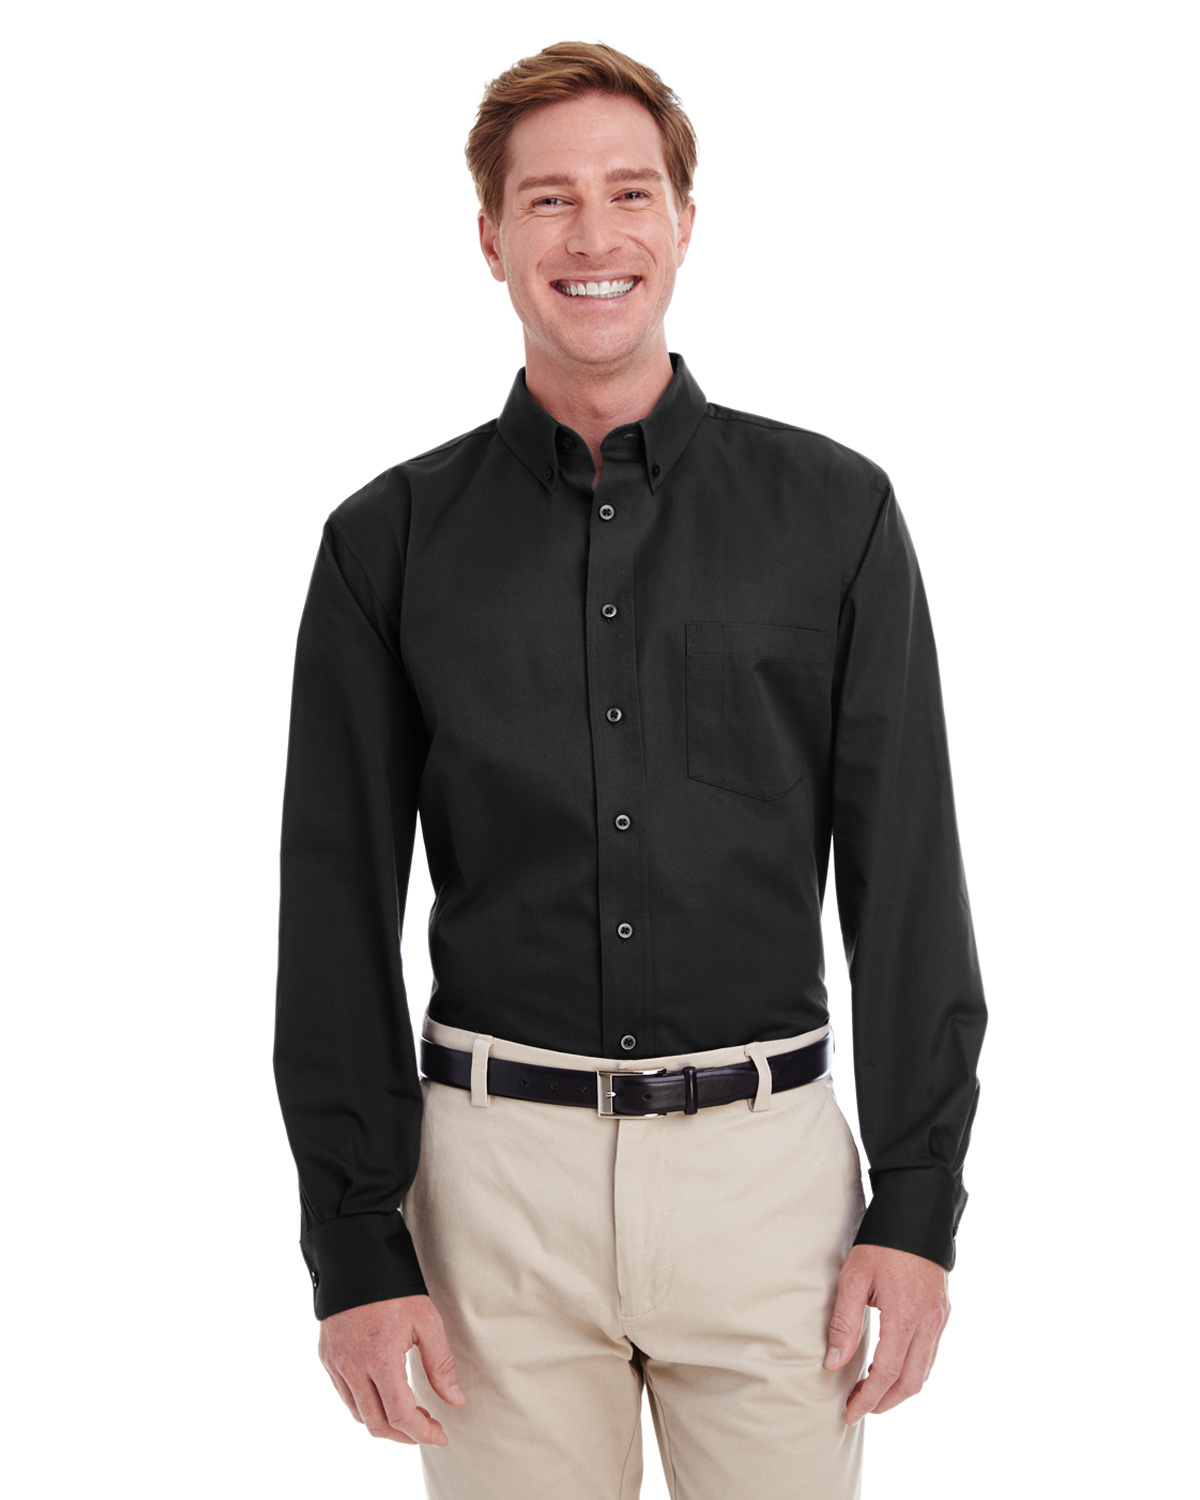 Men's Tall Foundation 100% Cotton Long-Sleeve Twill Shirt with Teflon